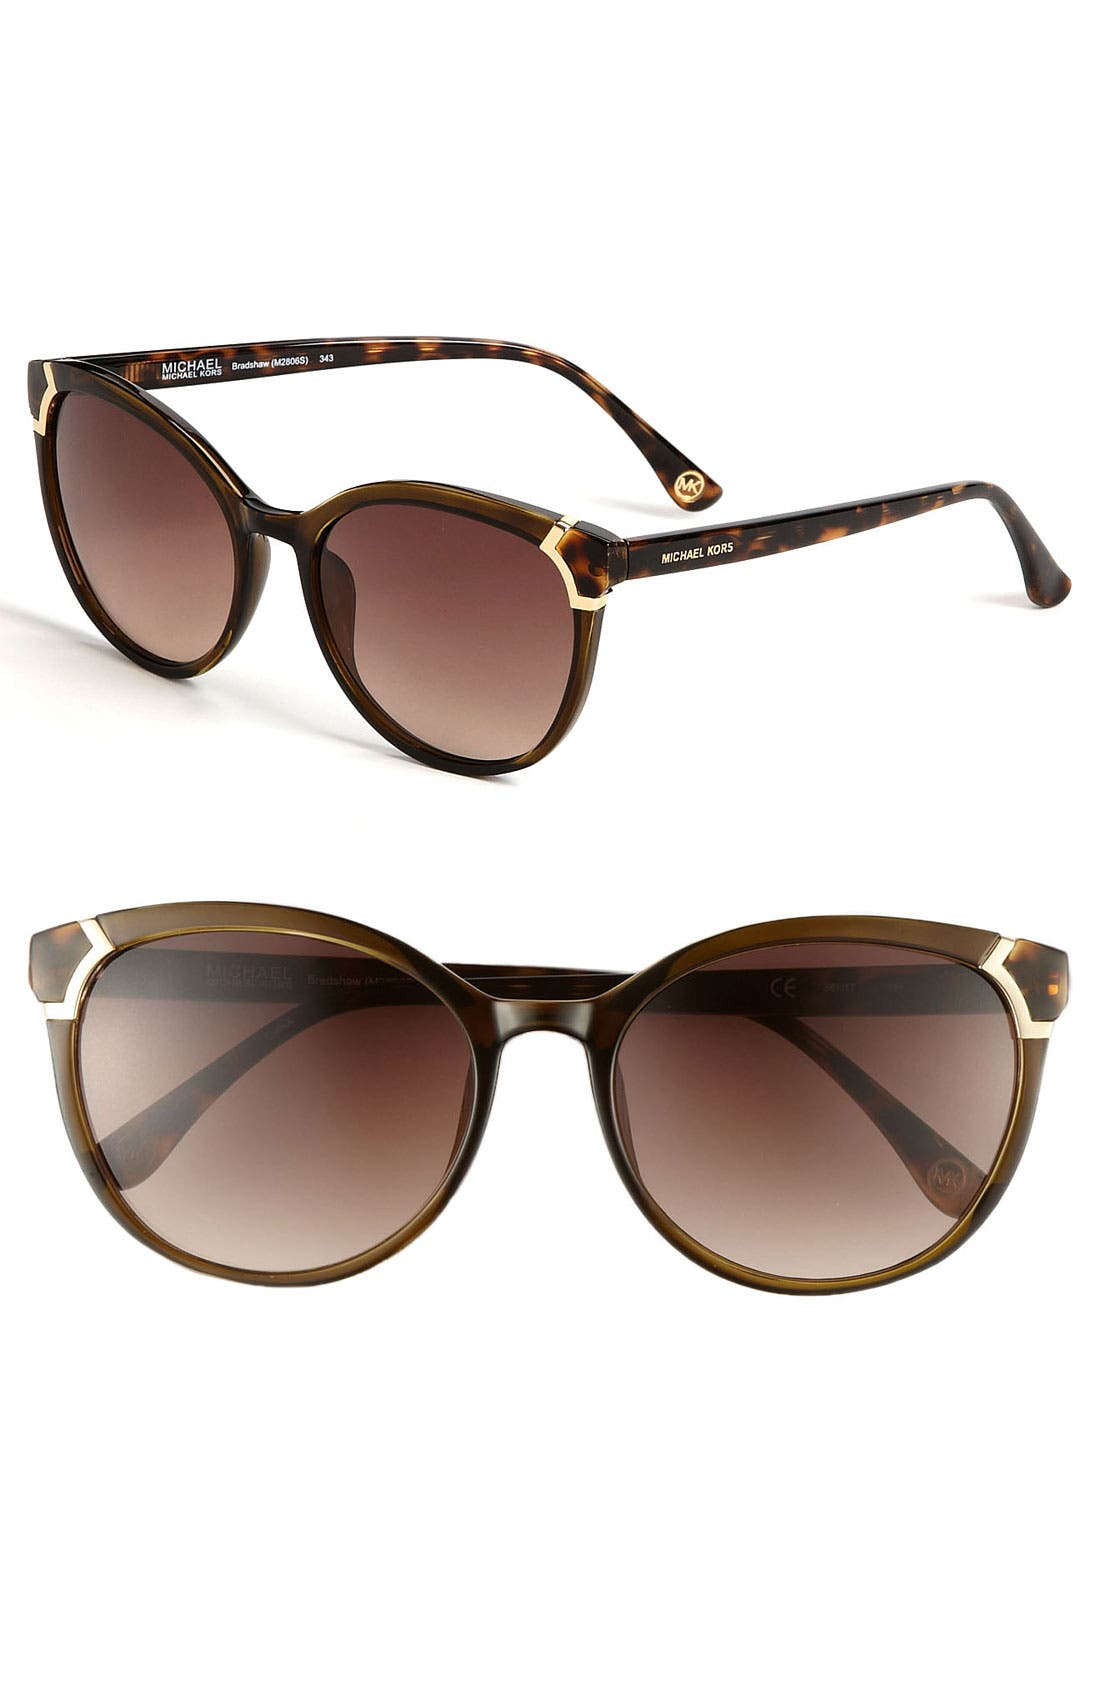 Alternate Image 1 Selected - MICHAEL Michael Kors 'Bradshaw' 55mm Sunglasses